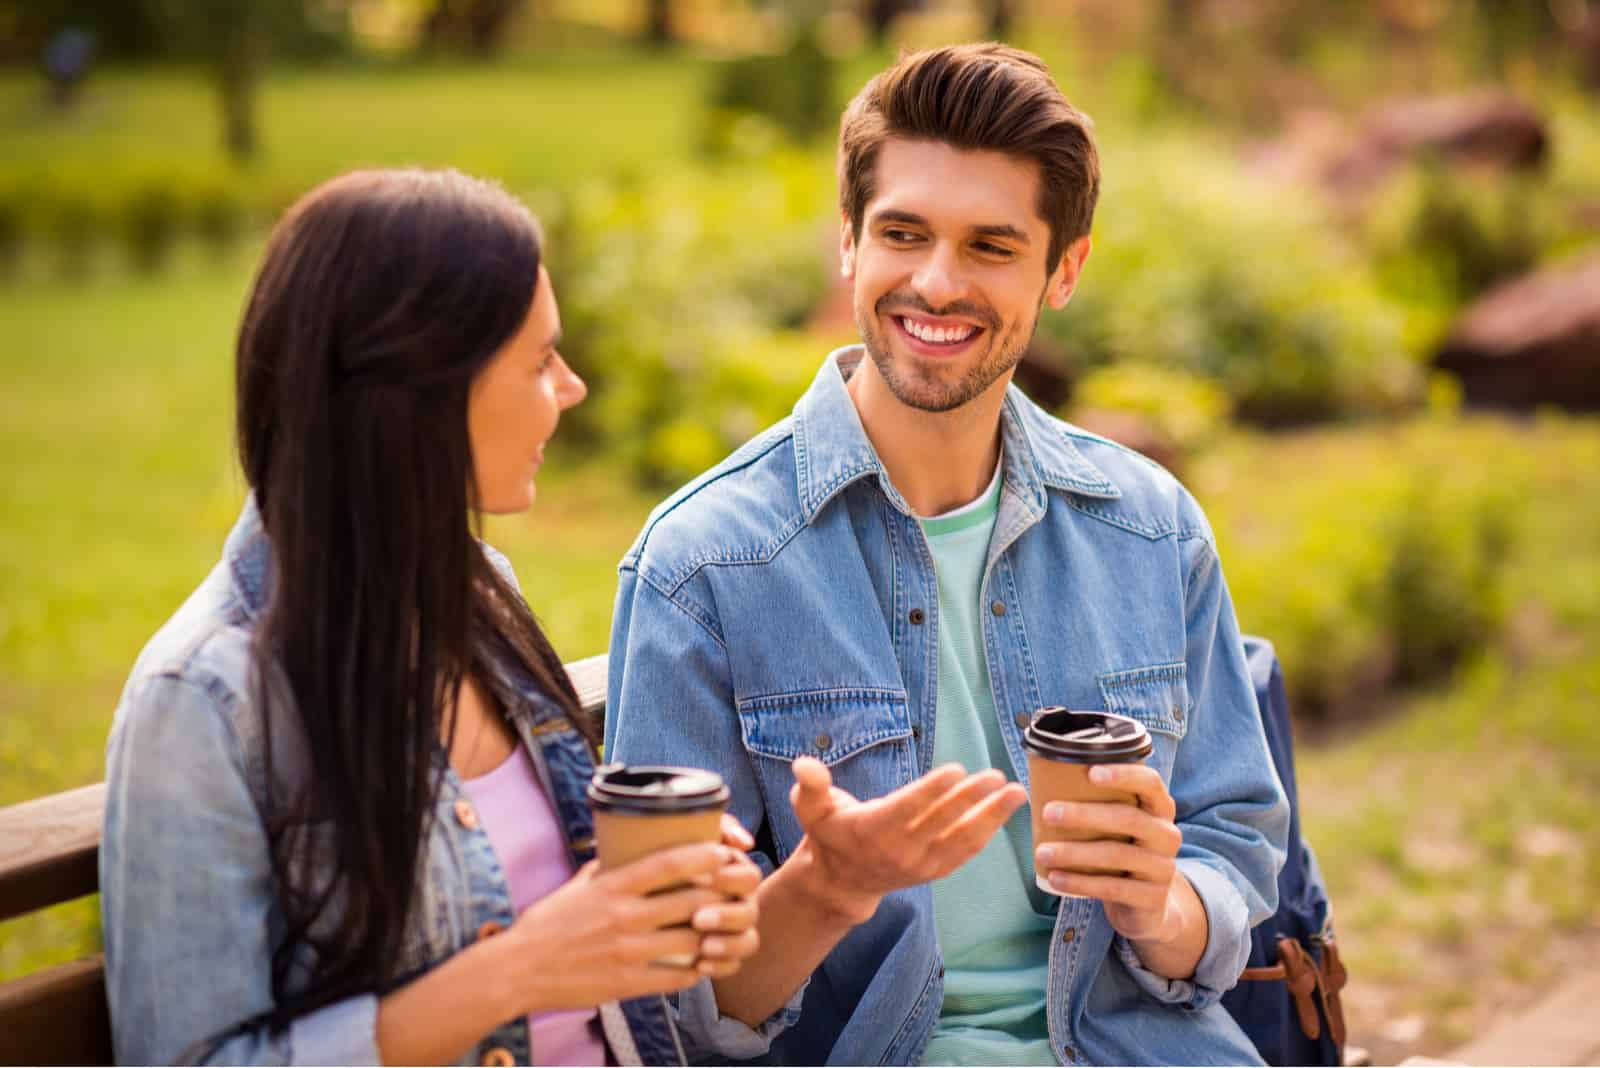 in the park on a bench a smiling couple drinks coffee to go and talks